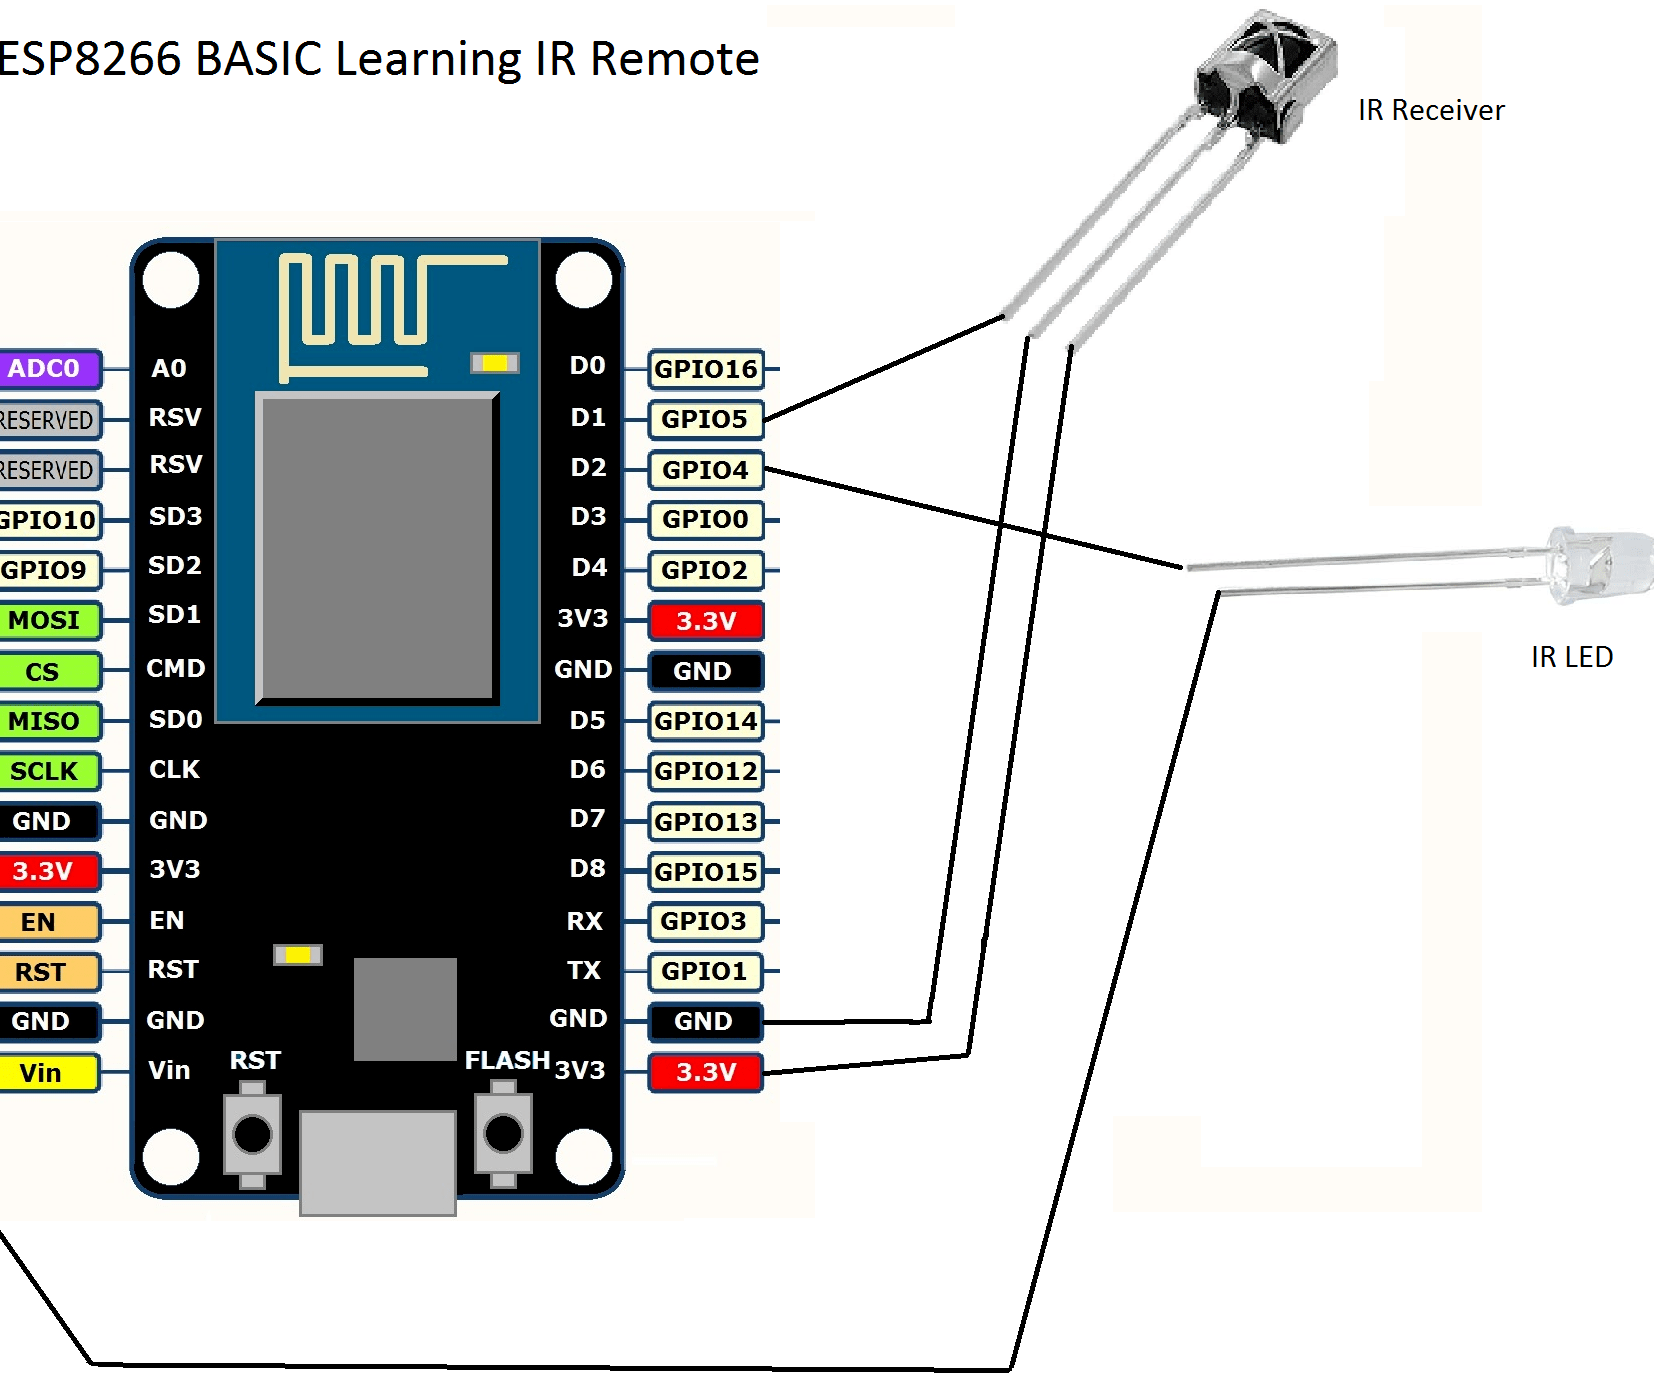 medium resolution of easiest esp8266 learning ir remote control via wifi 4 steps with pictures